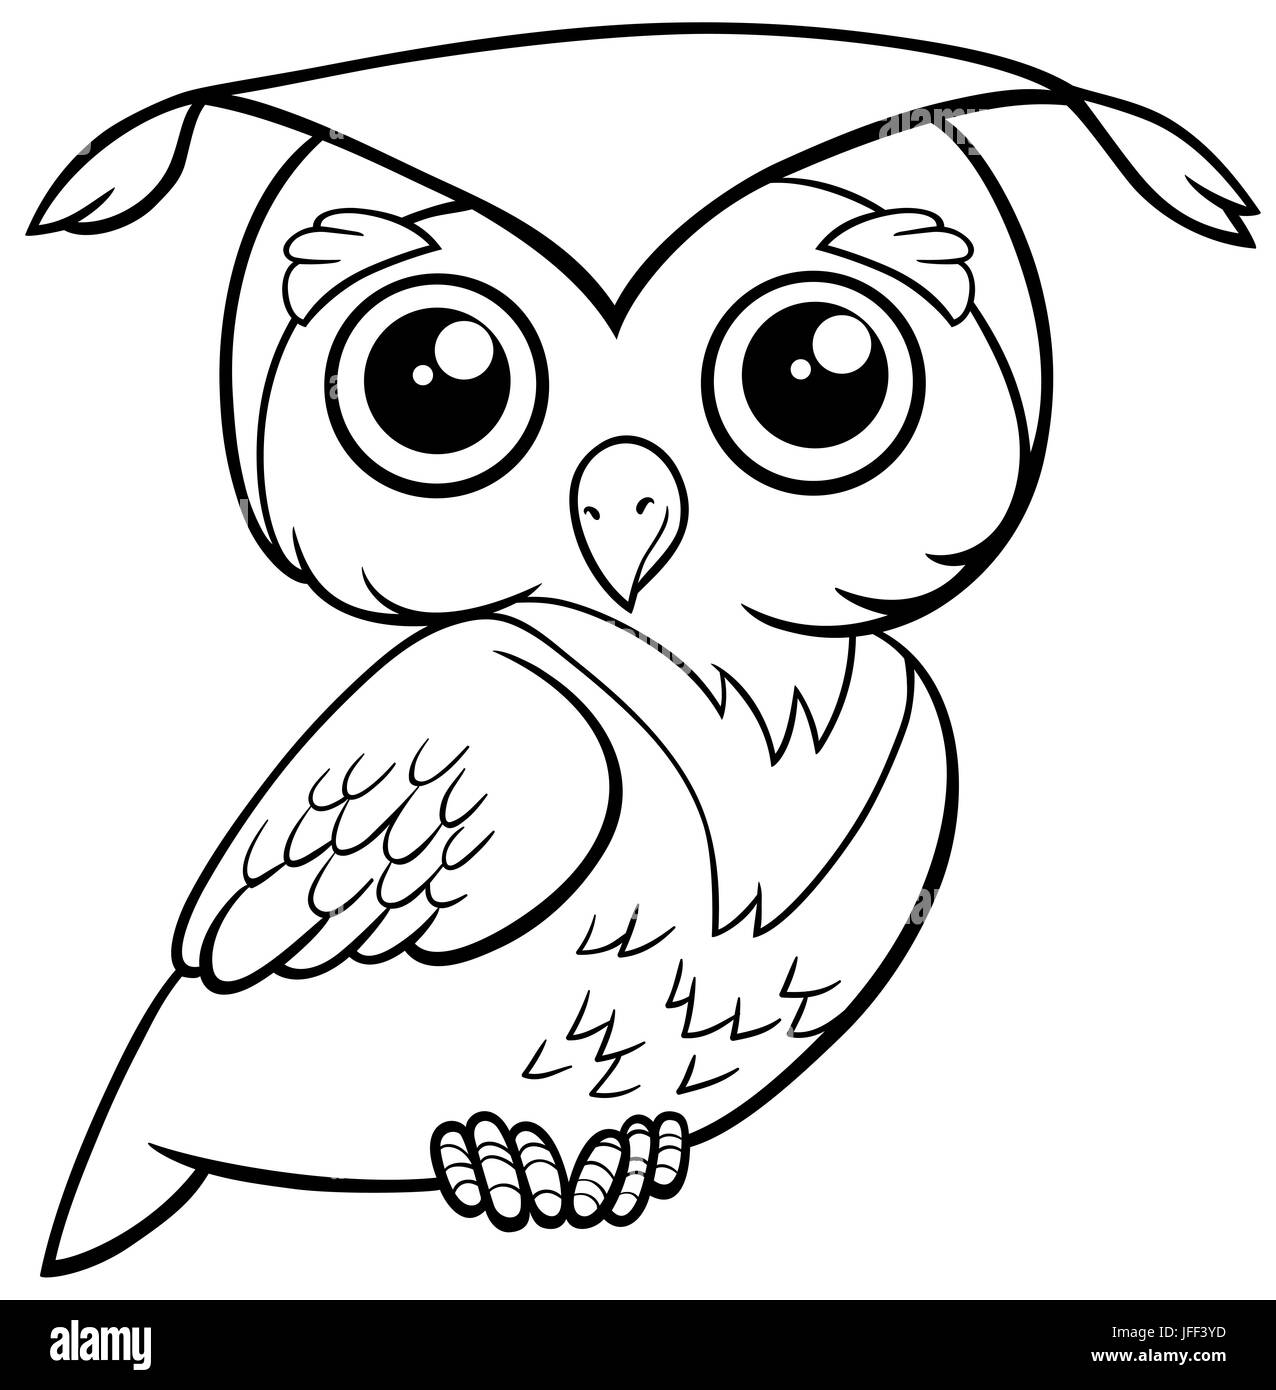 - Cute Owl Coloring Page Stock Photo - Alamy